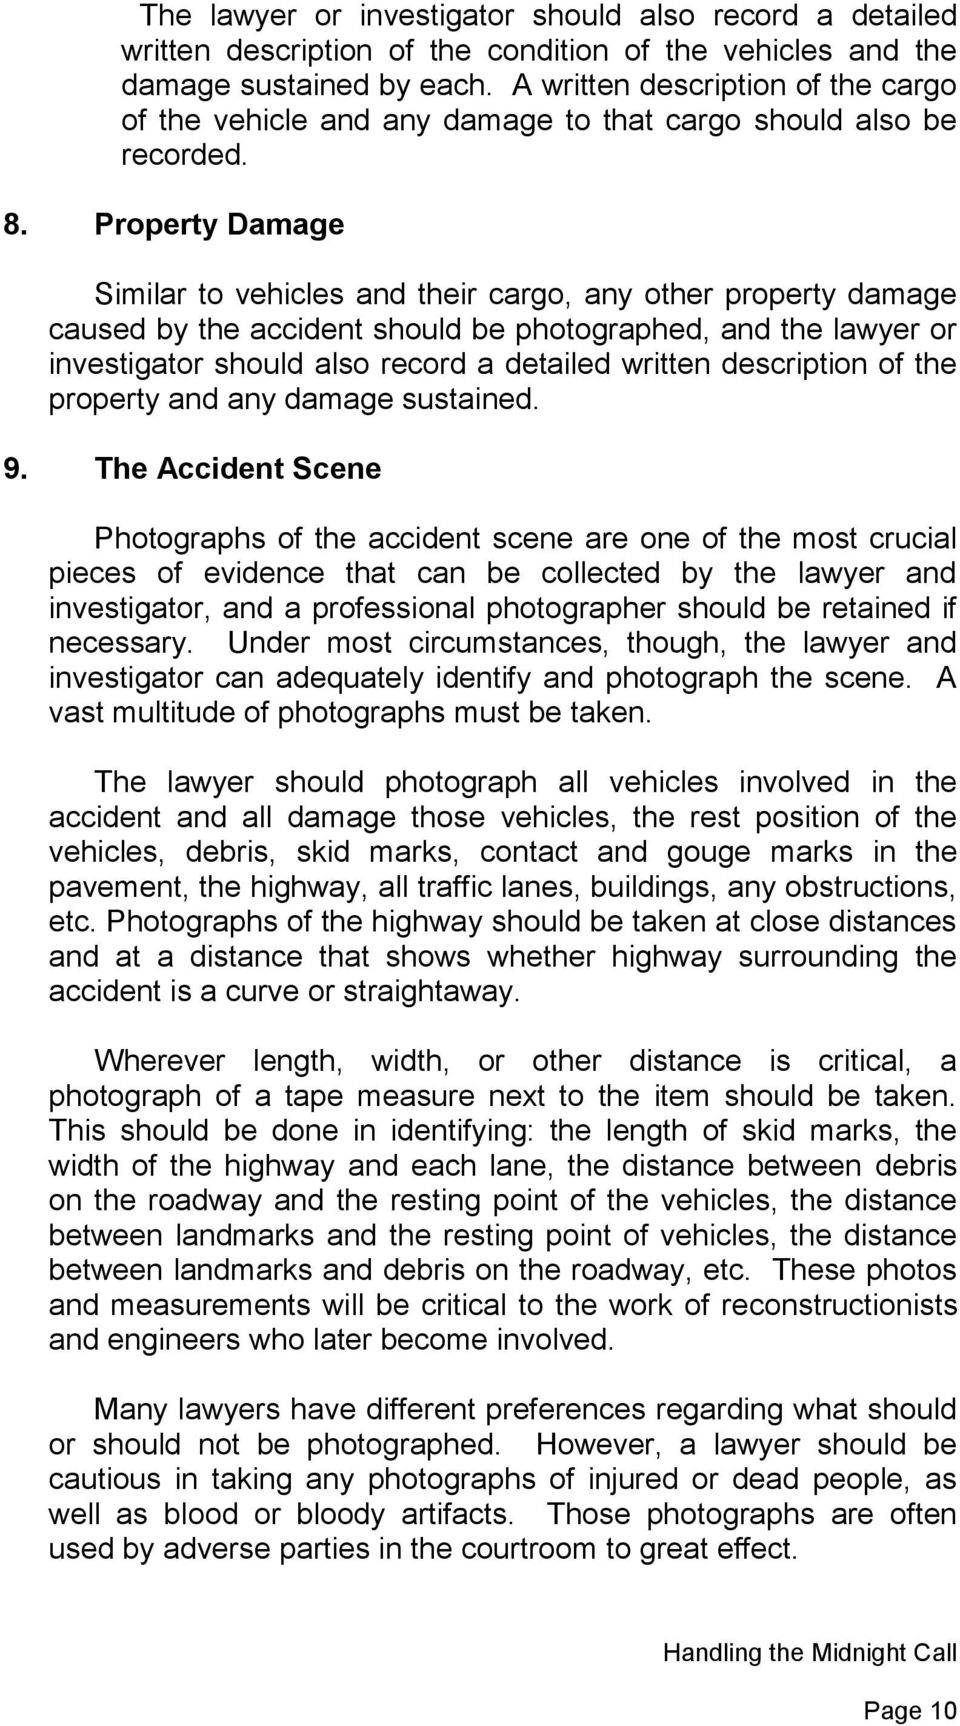 Property Damage Similar to vehicles and their cargo, any other property damage caused by the accident should be photographed, and the lawyer or investigator should also record a detailed written